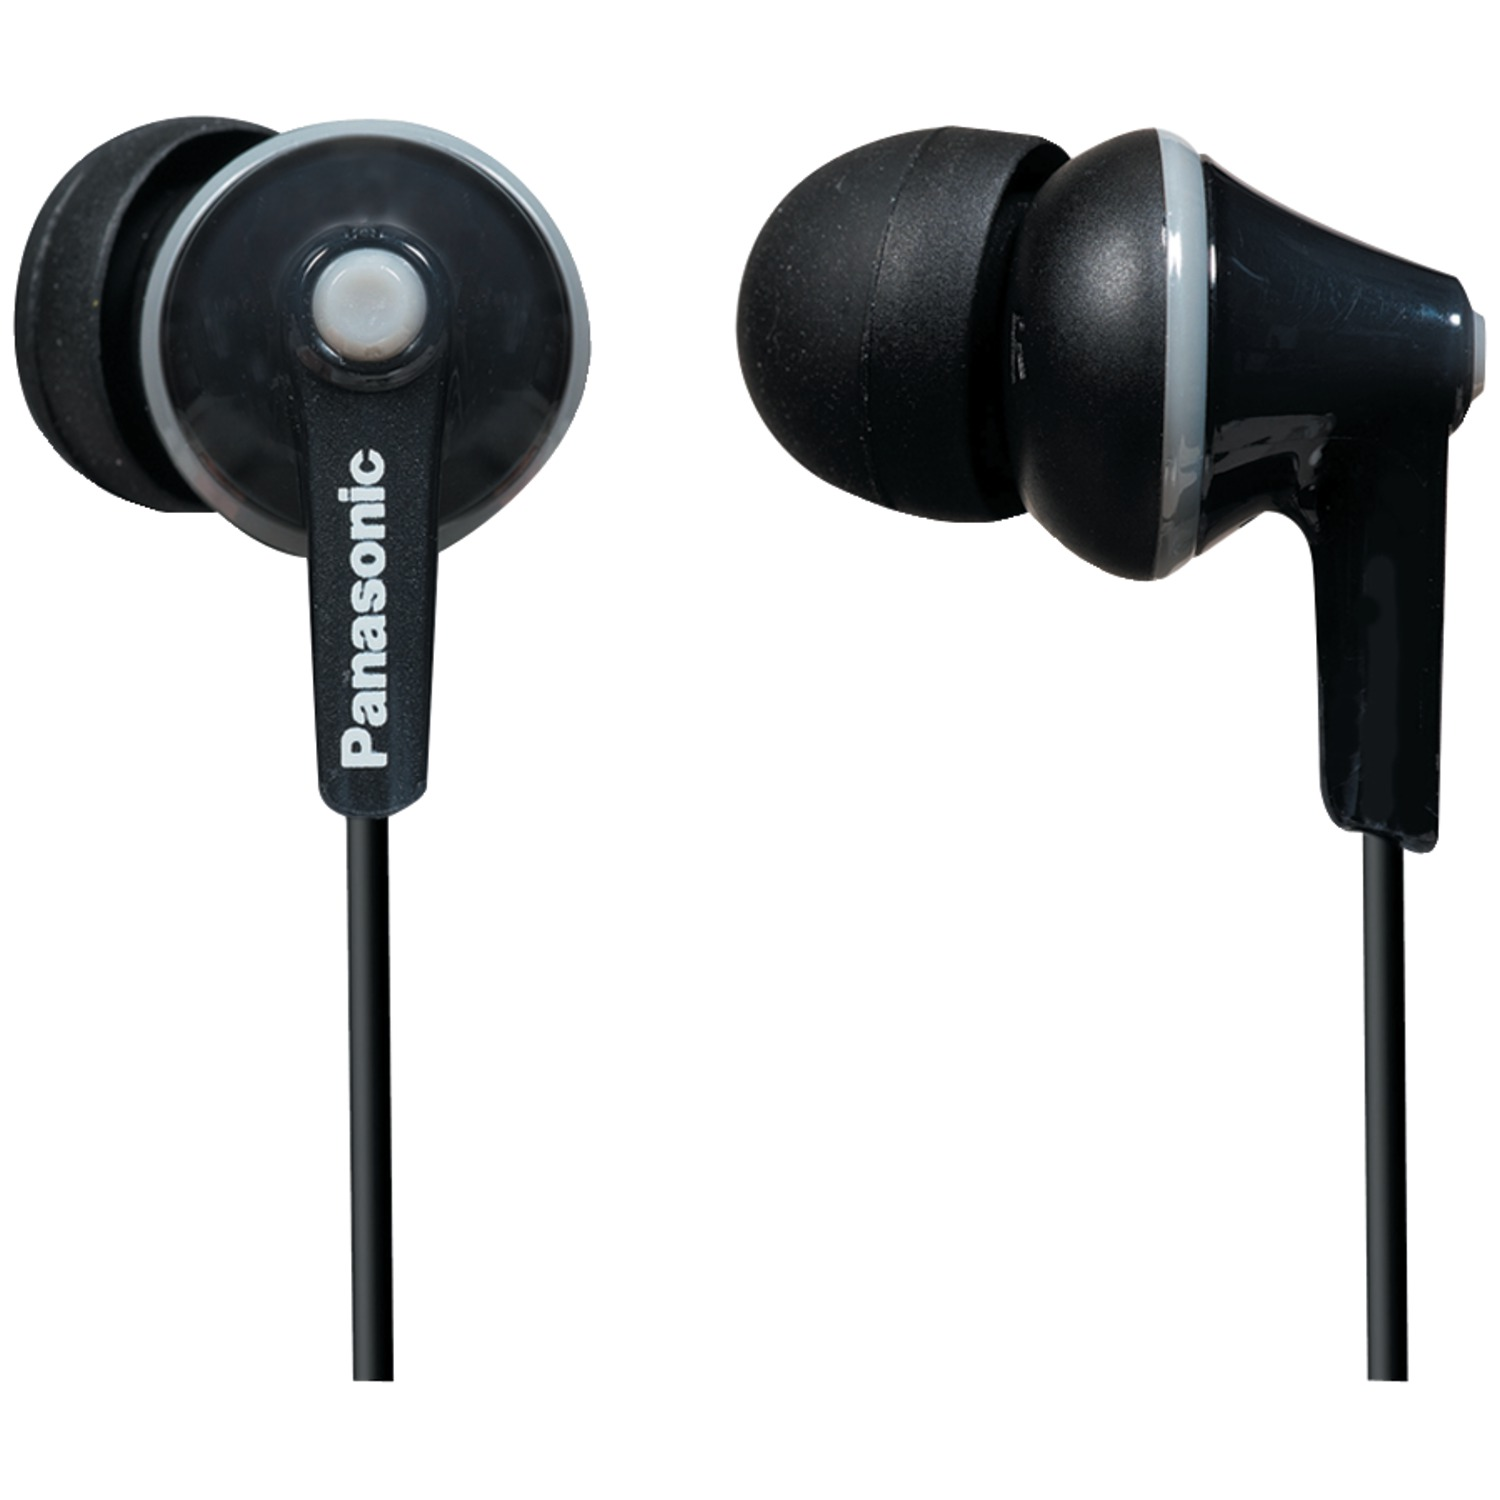 Panasonic RP-TCM125-K TCM125 Earbuds with Remote & Microphone (Black)